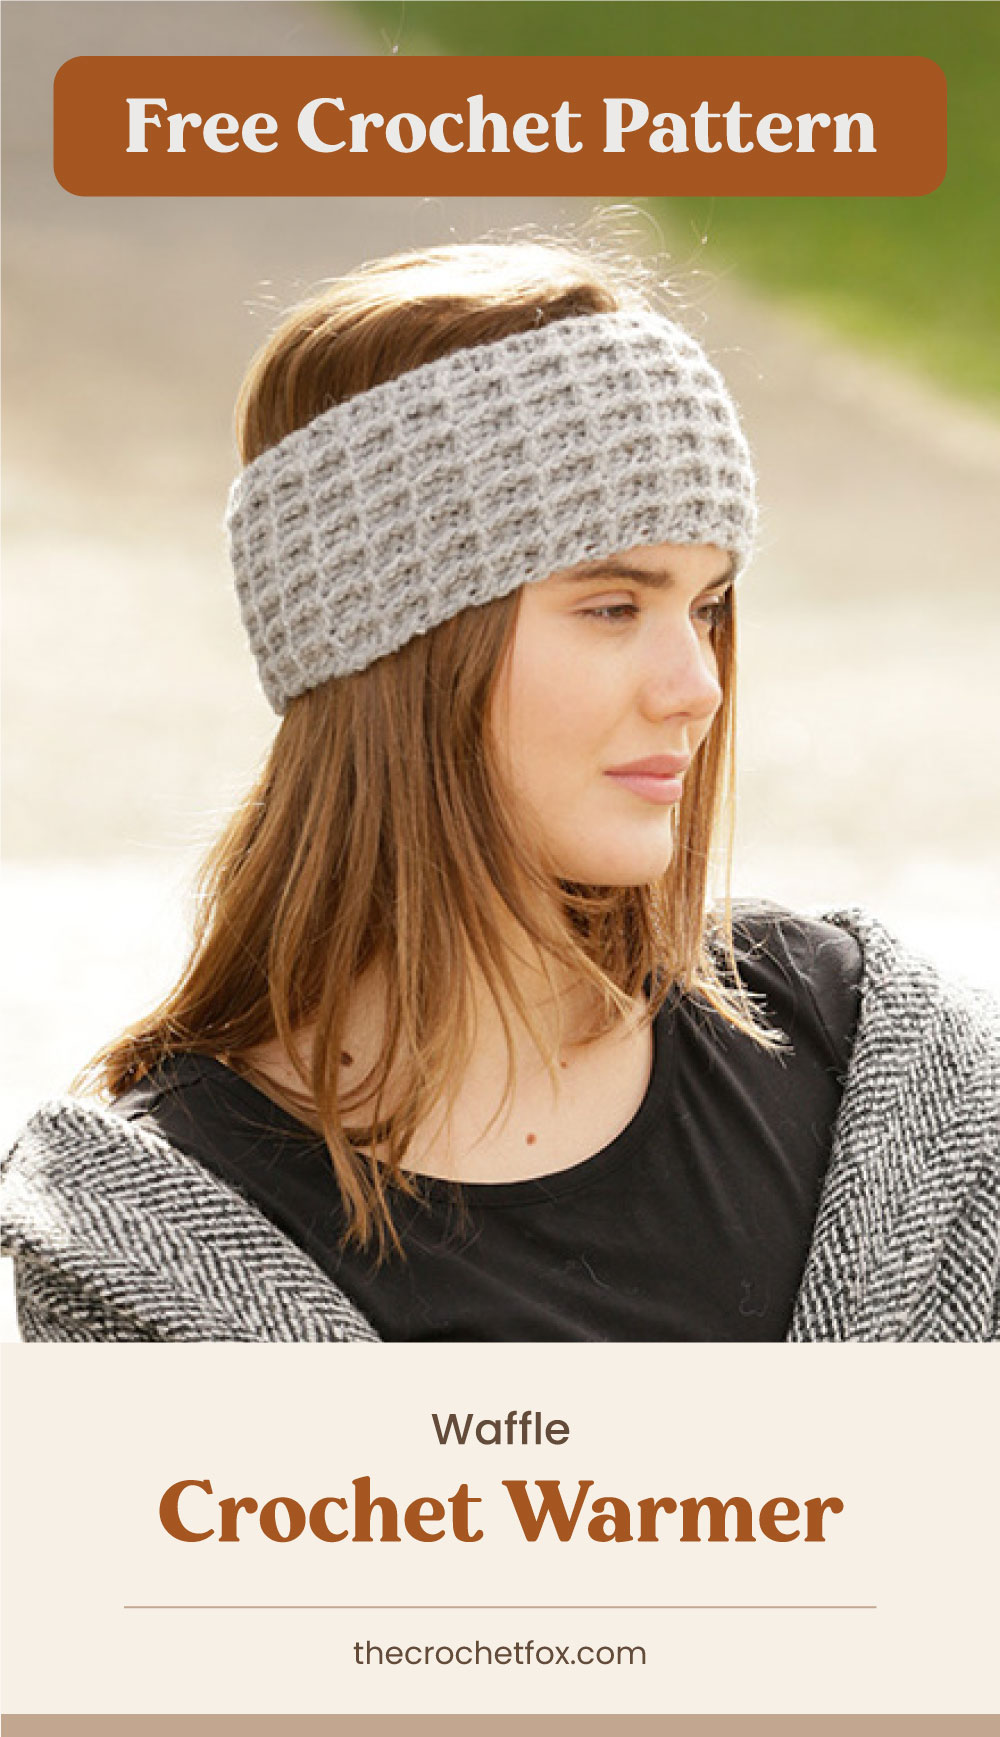 """Text area which says """"Free Crochet Pattern"""" next to a woman wearing a gray waffle-like crochet headband followed by another text area which says """"Waffle Crochet Warmer, thecrochetfox.com"""""""